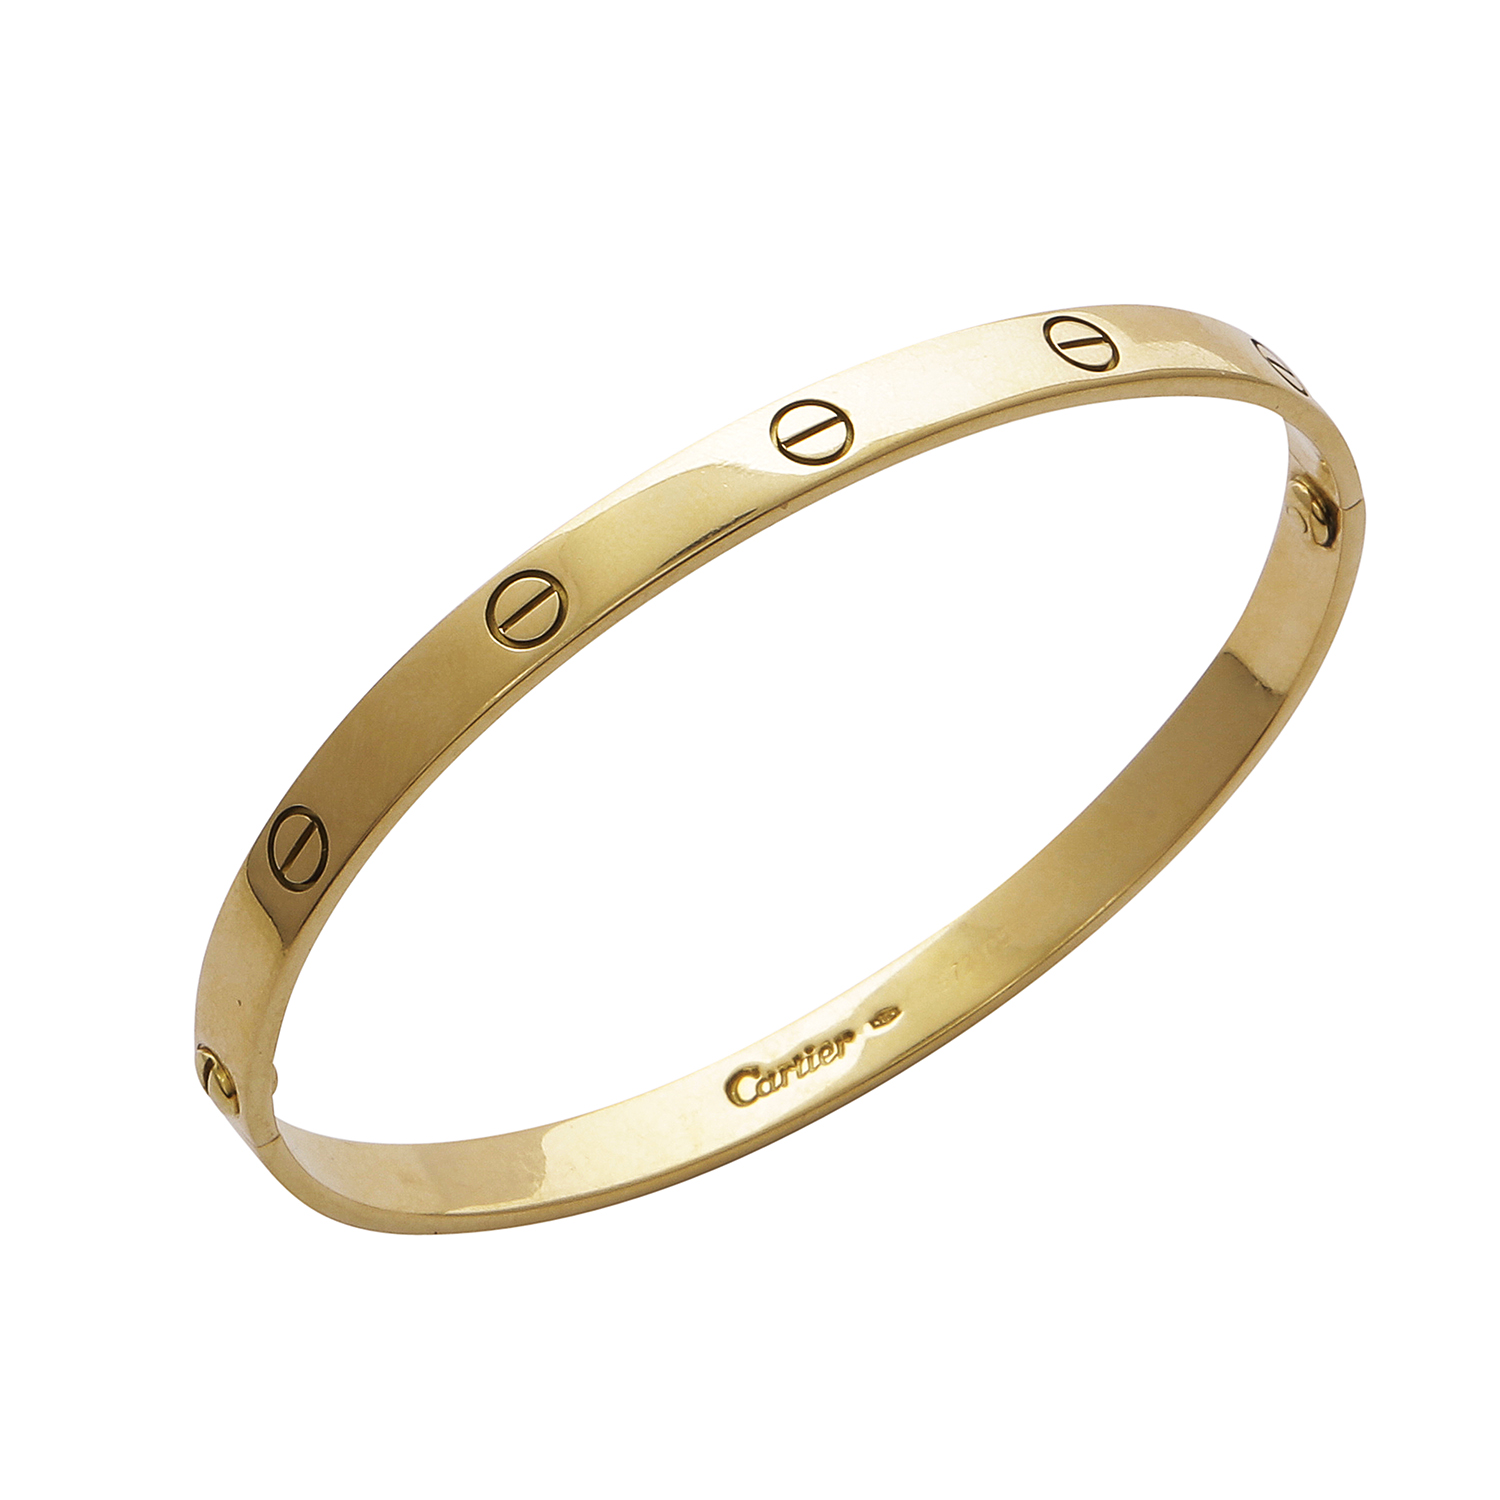 Los 49 - A LOVE BANGLE, CARTIER in 18ct yellow gold, the oval bangle punctuated with screw head motifs,